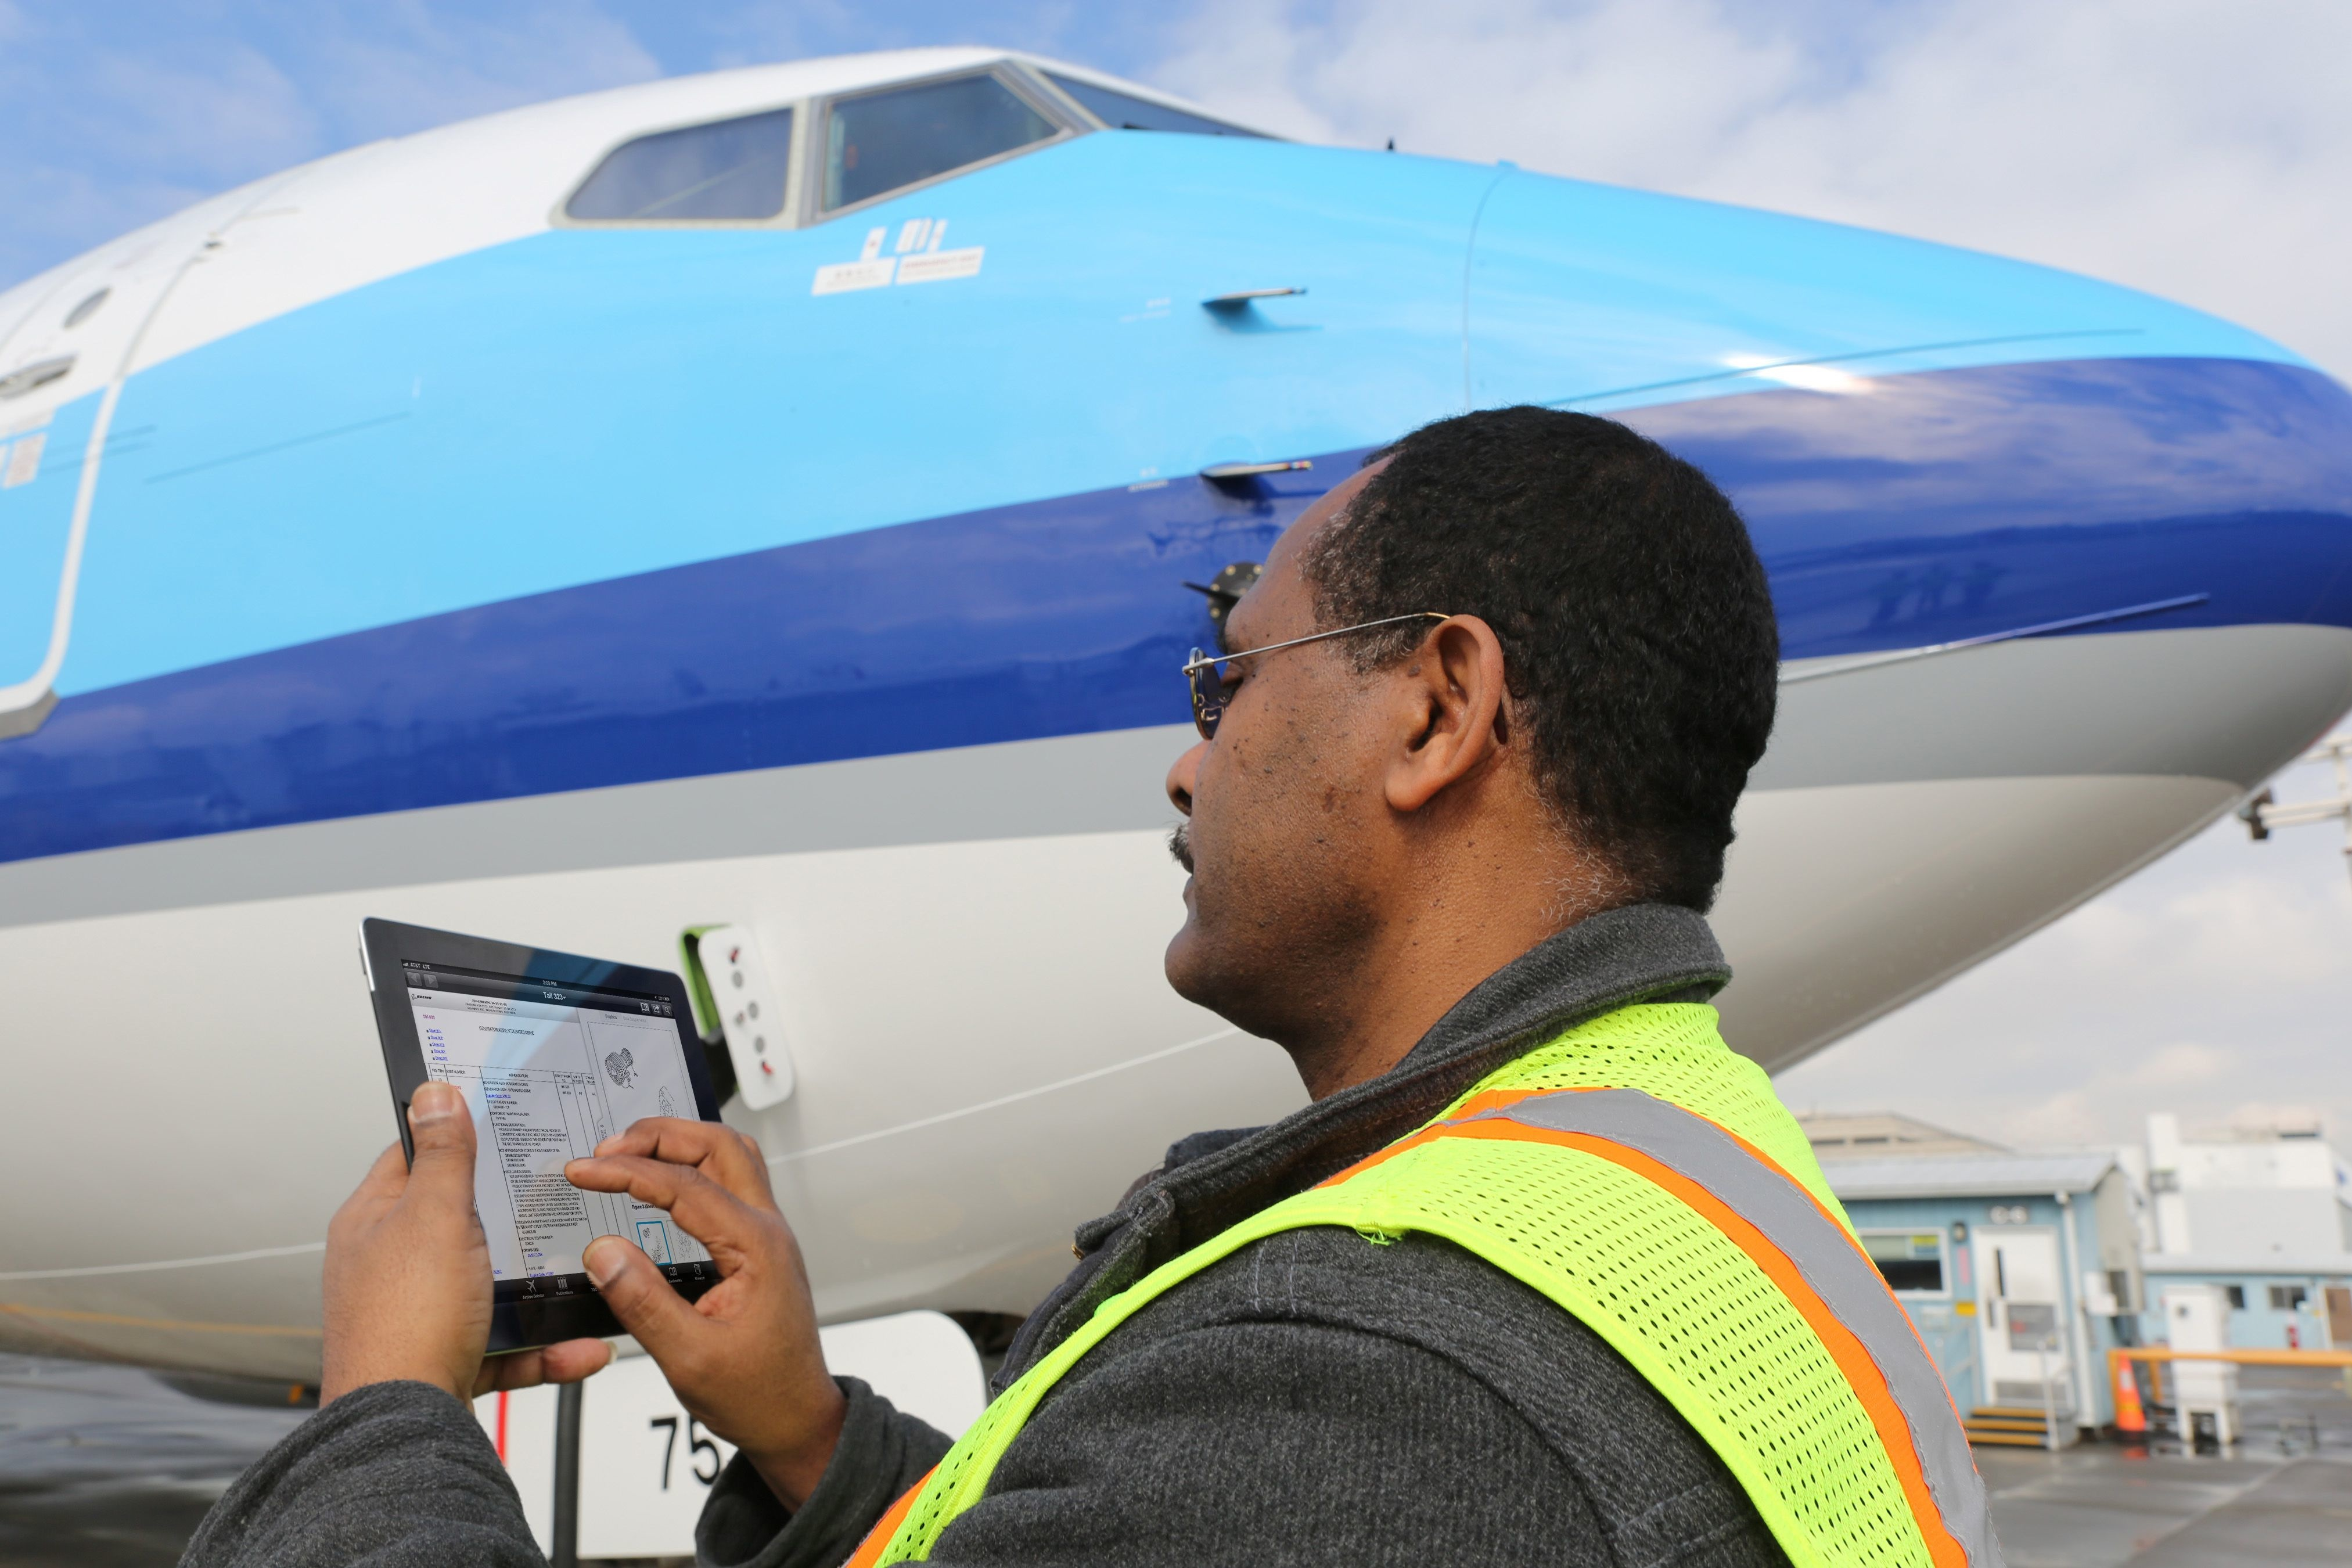 Airplane Maintenance Boeing Rolls Out Ipad App Suite For Airplane Maintenance Crews